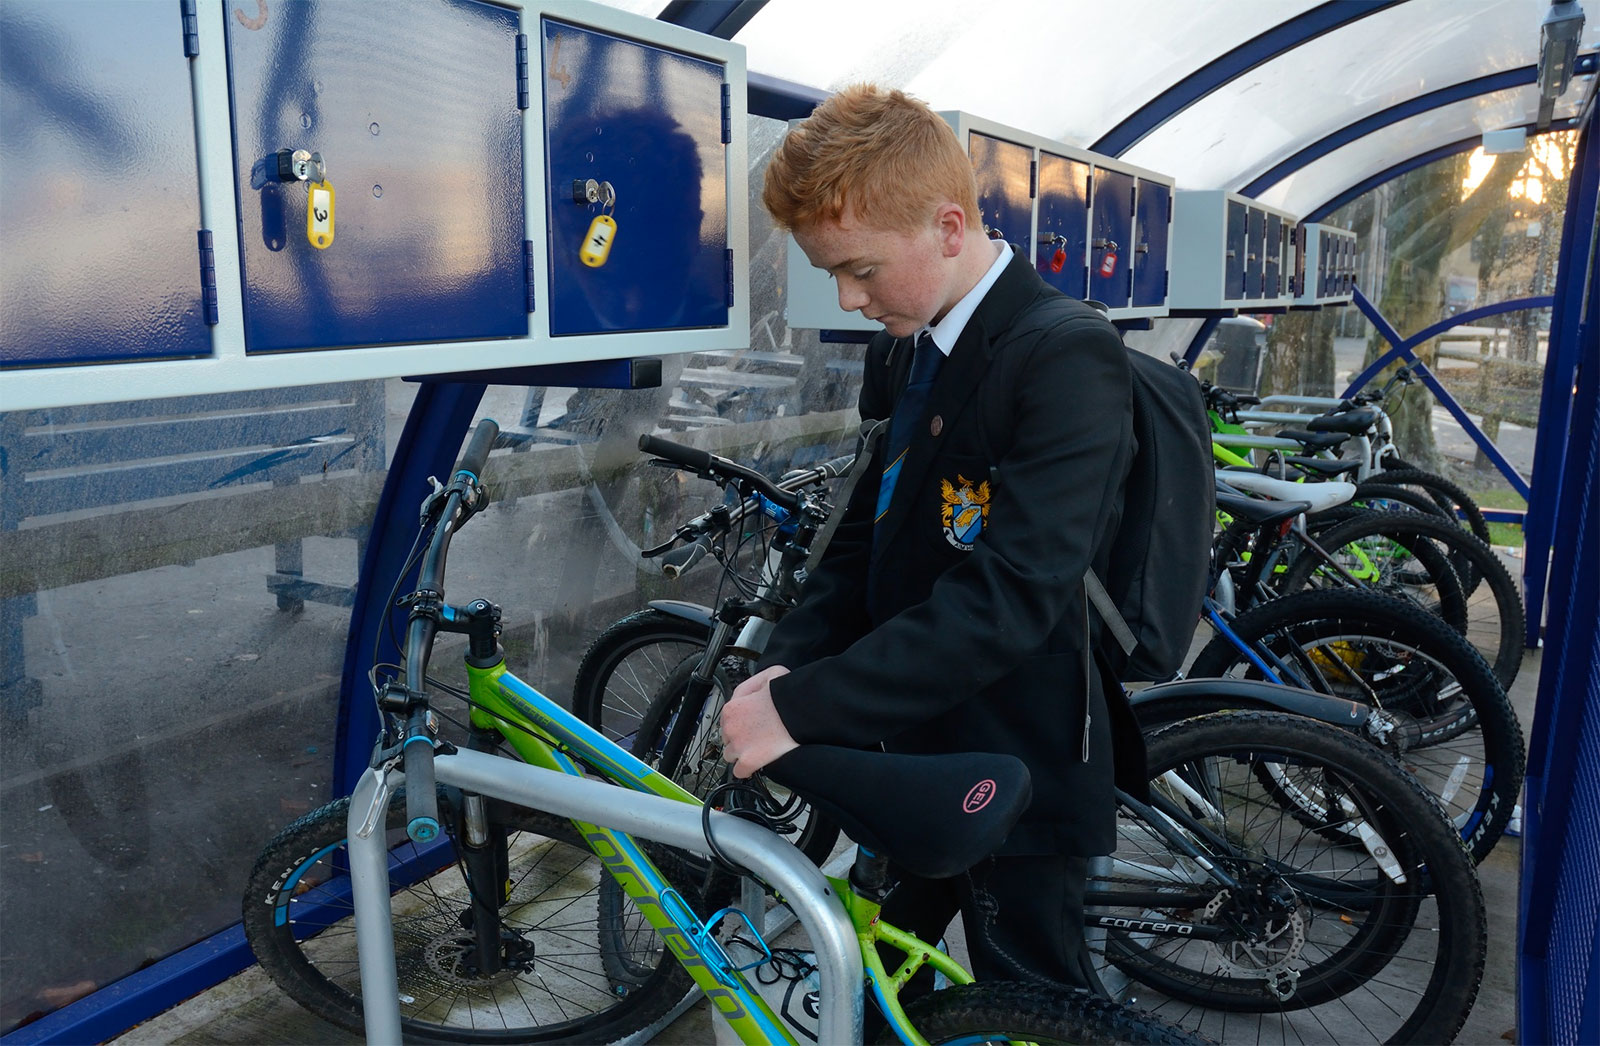 PIC 3 West Hill pupil locking his bike in one of the new cycle parking shelters